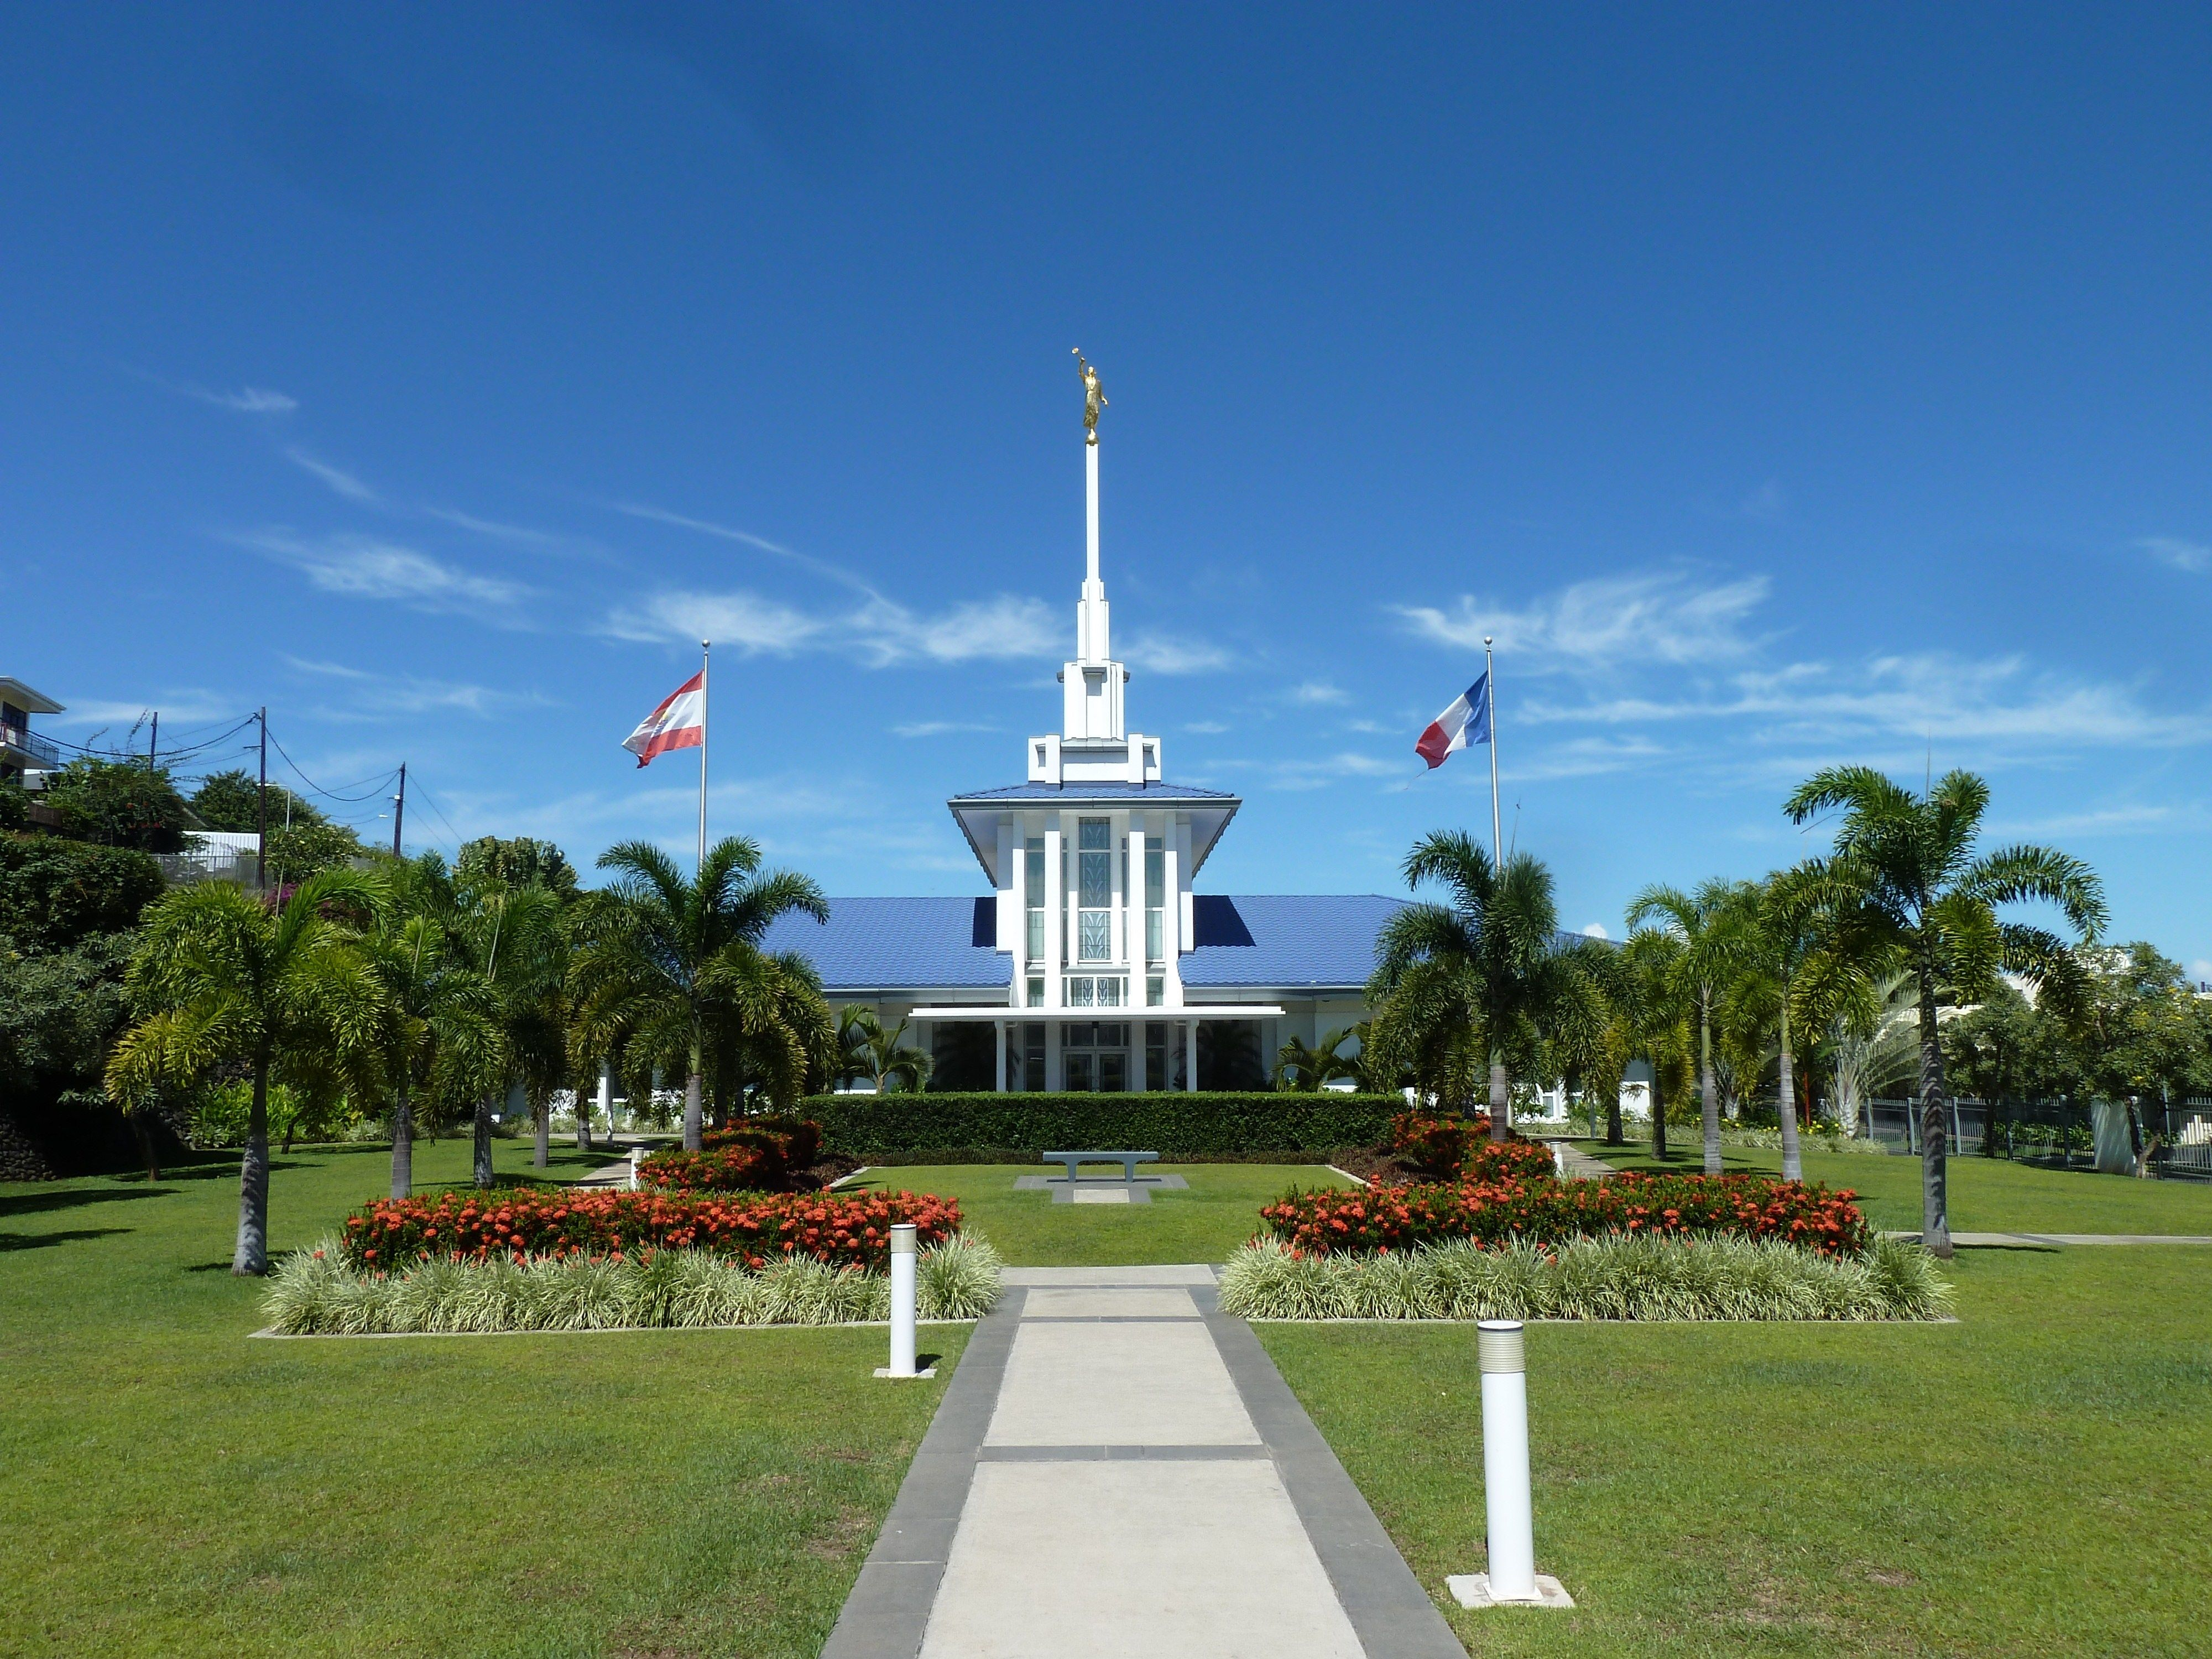 The front of the Papeete Tahiti Temple and grounds.